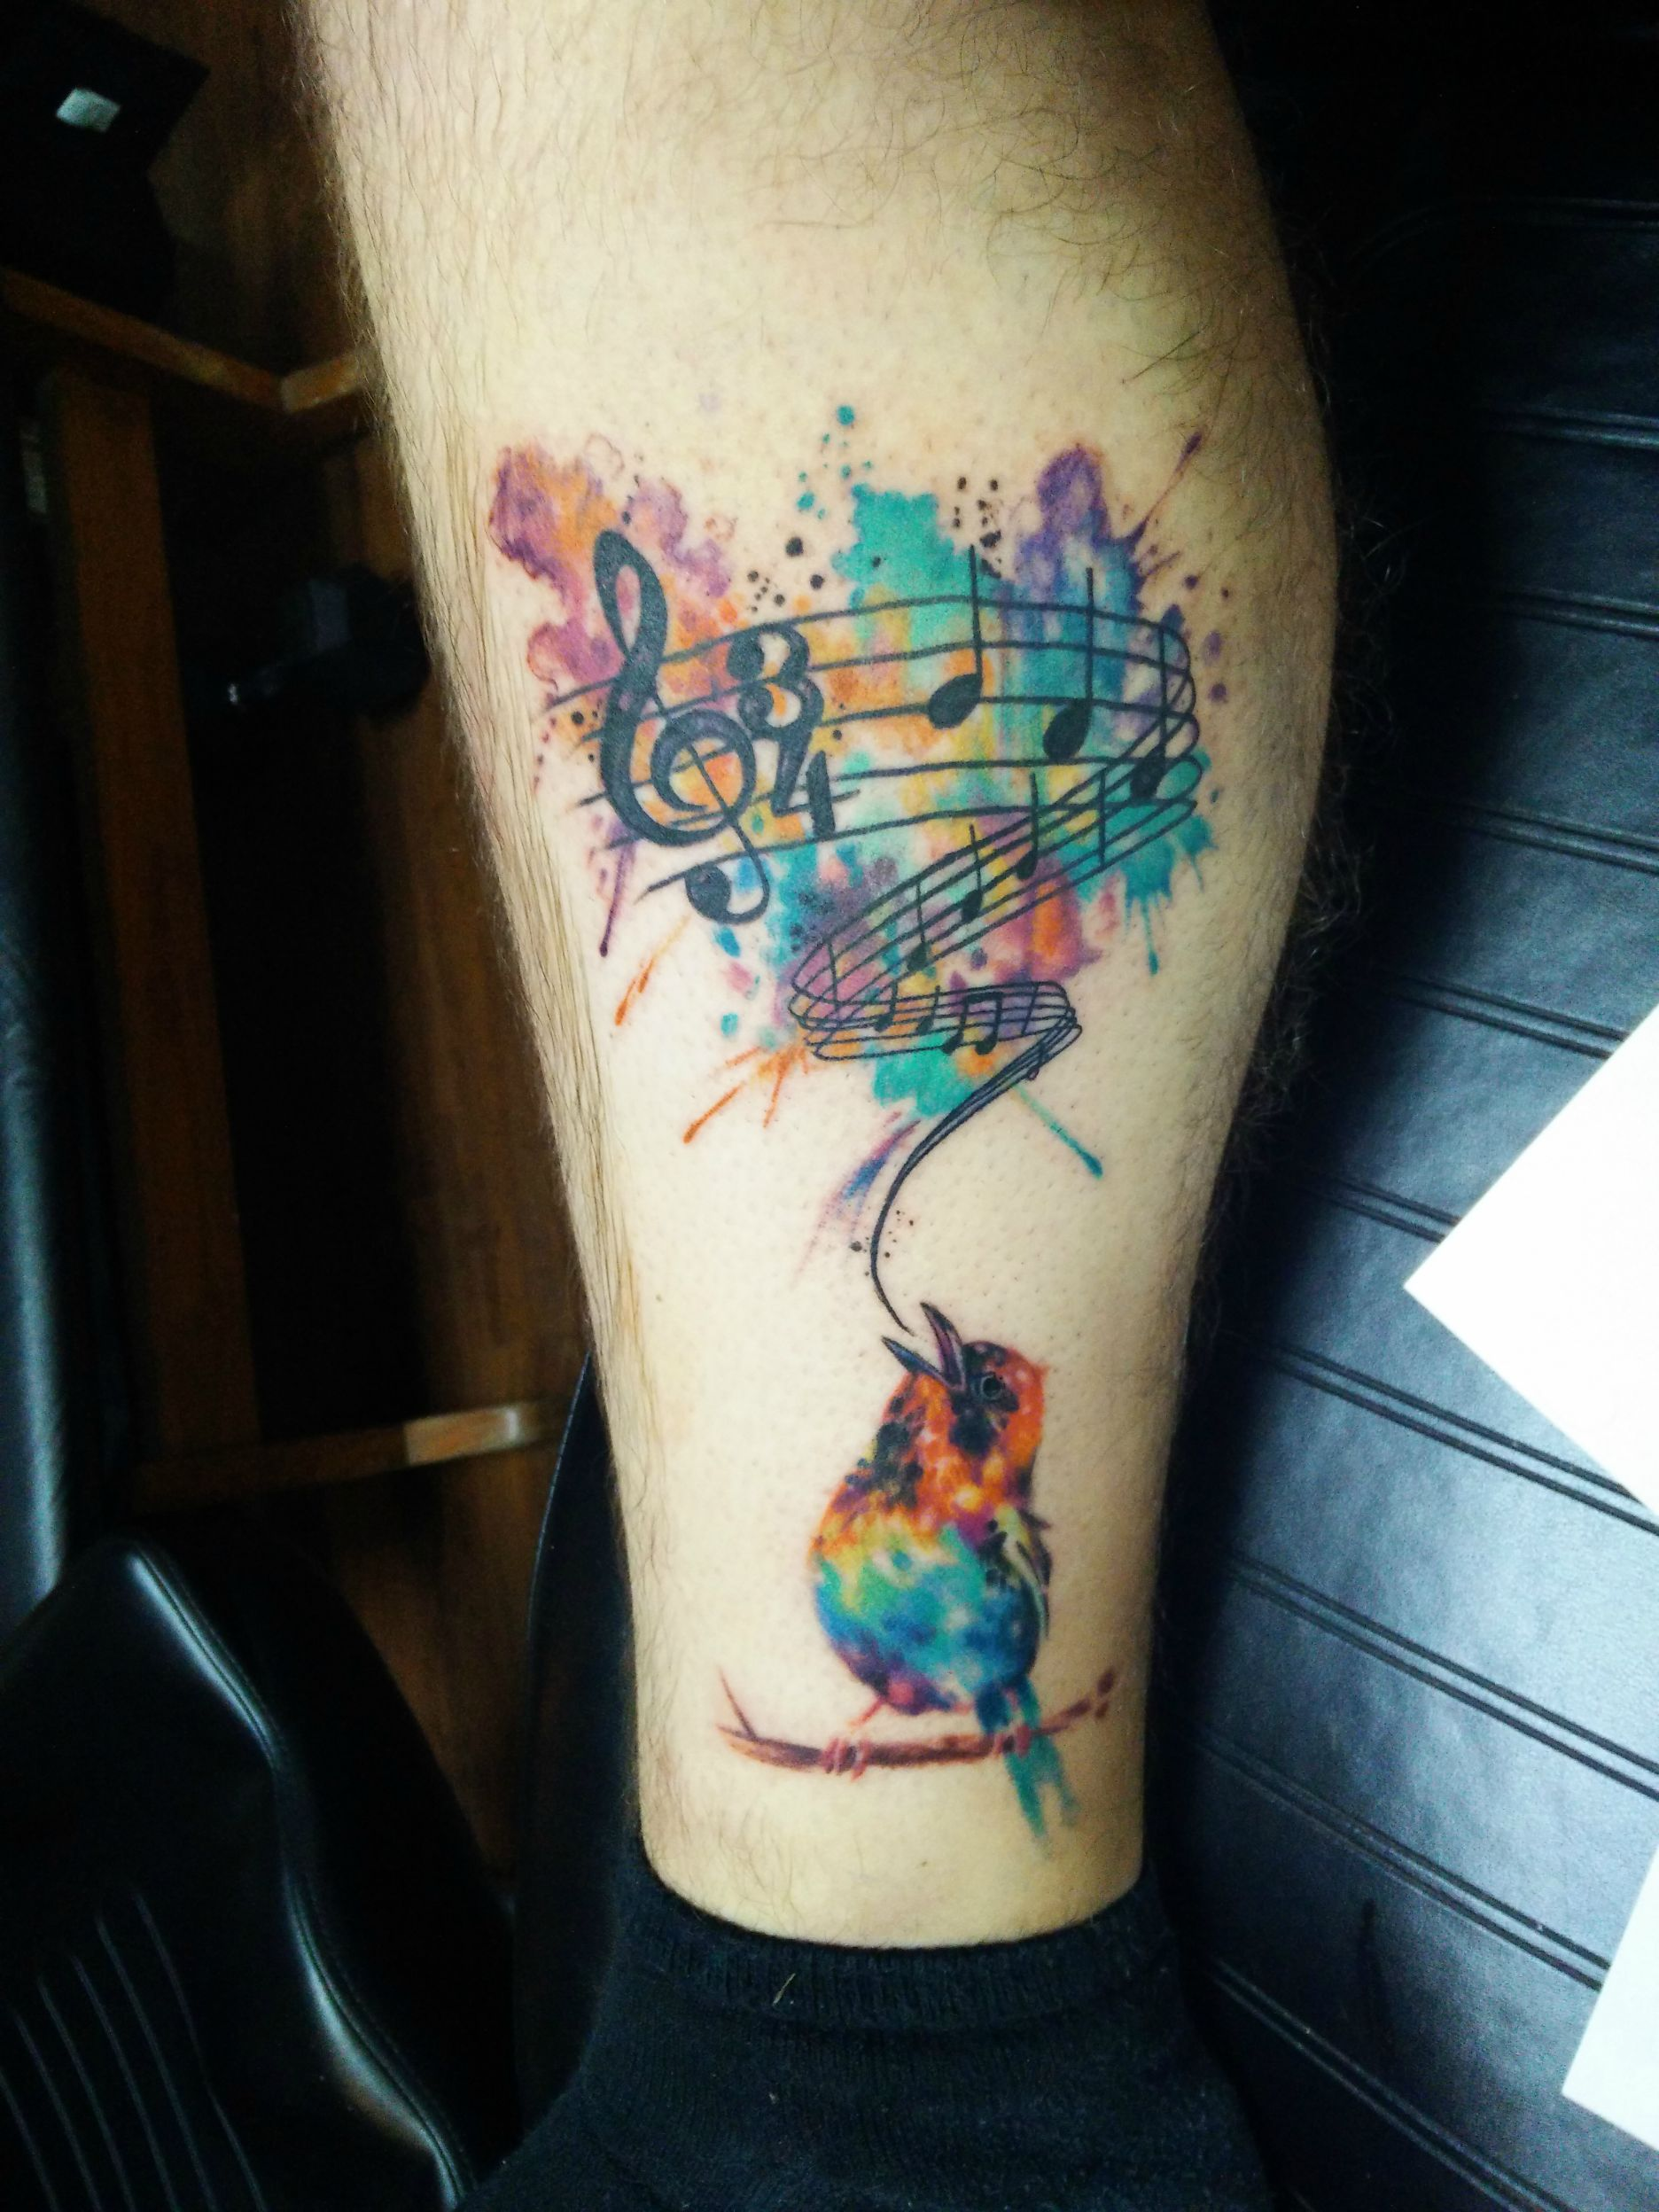 Best tattoo design ideas of the week sept 13 to 20 2015 for Best tattoo artist in asheville nc